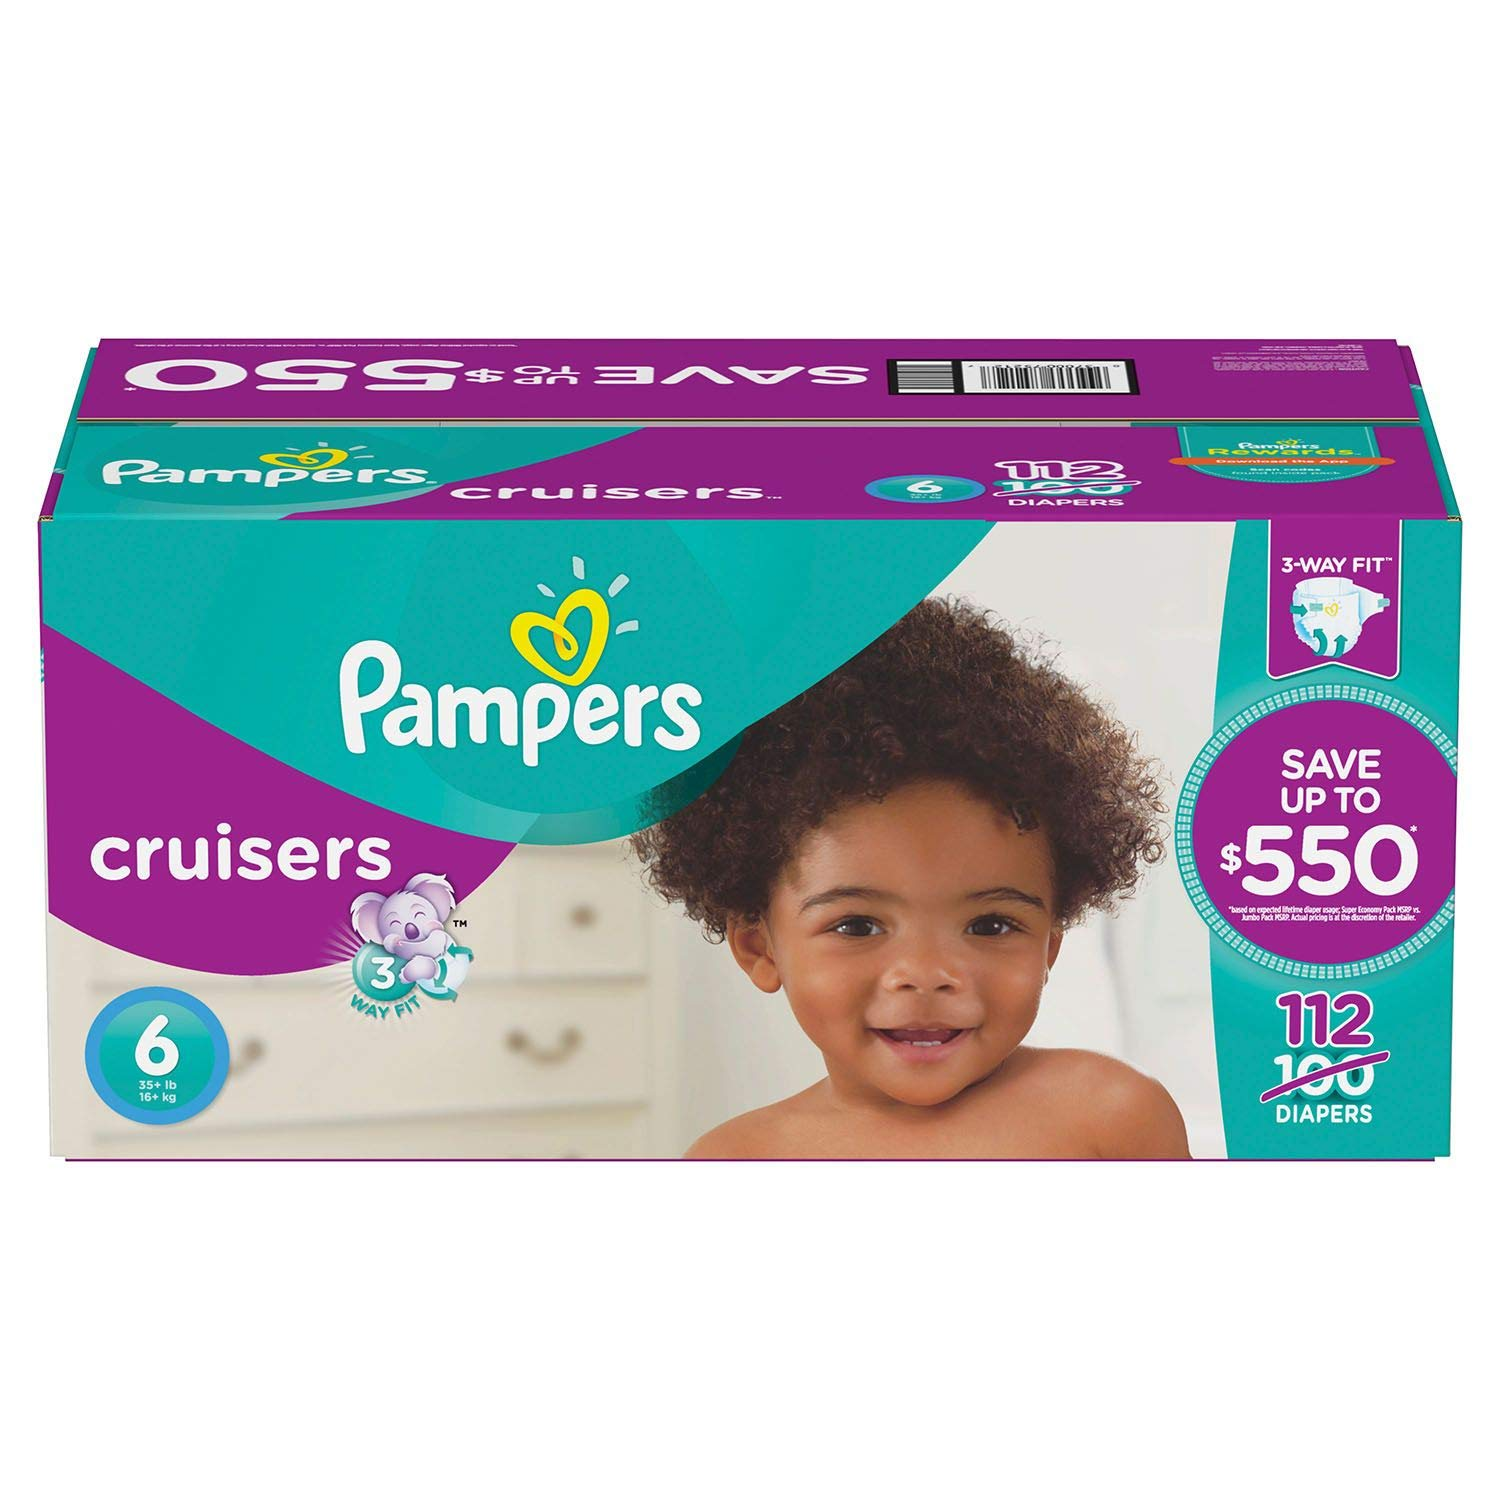 Pampers Cruisers Diapers Size 6 Economy Pack Plus, 112 Count